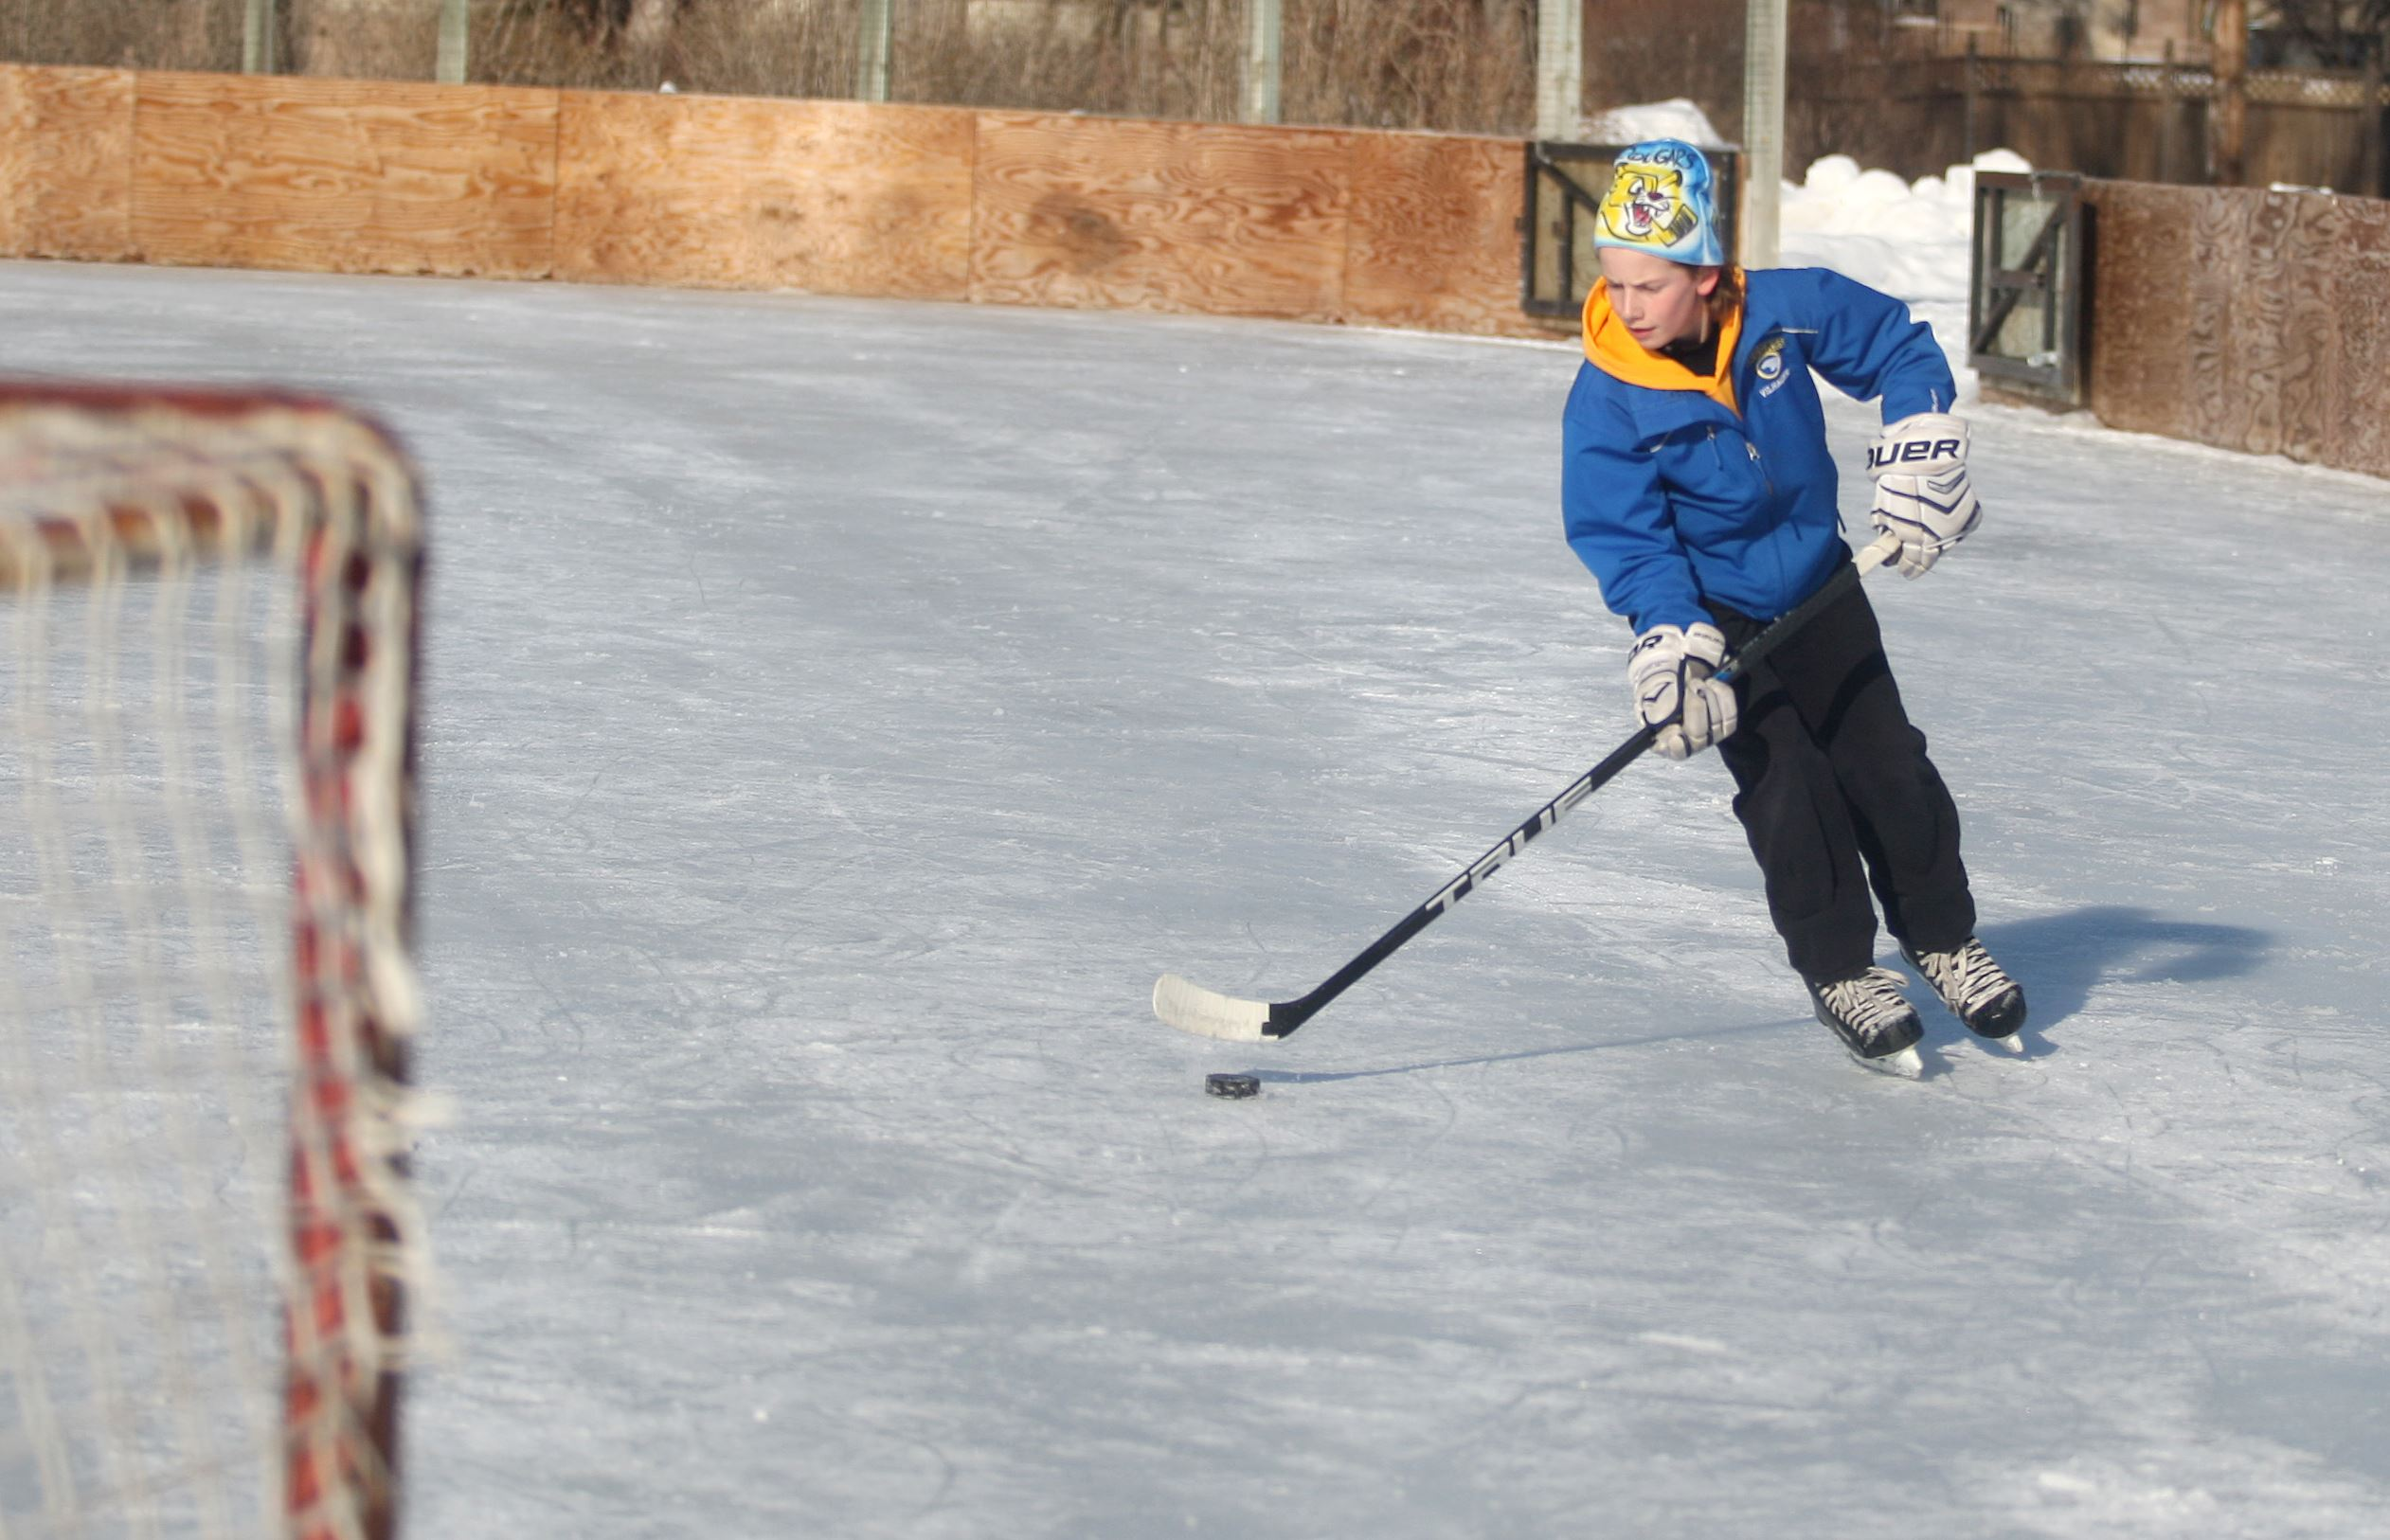 Ice Hockey player on outdoor ice rink